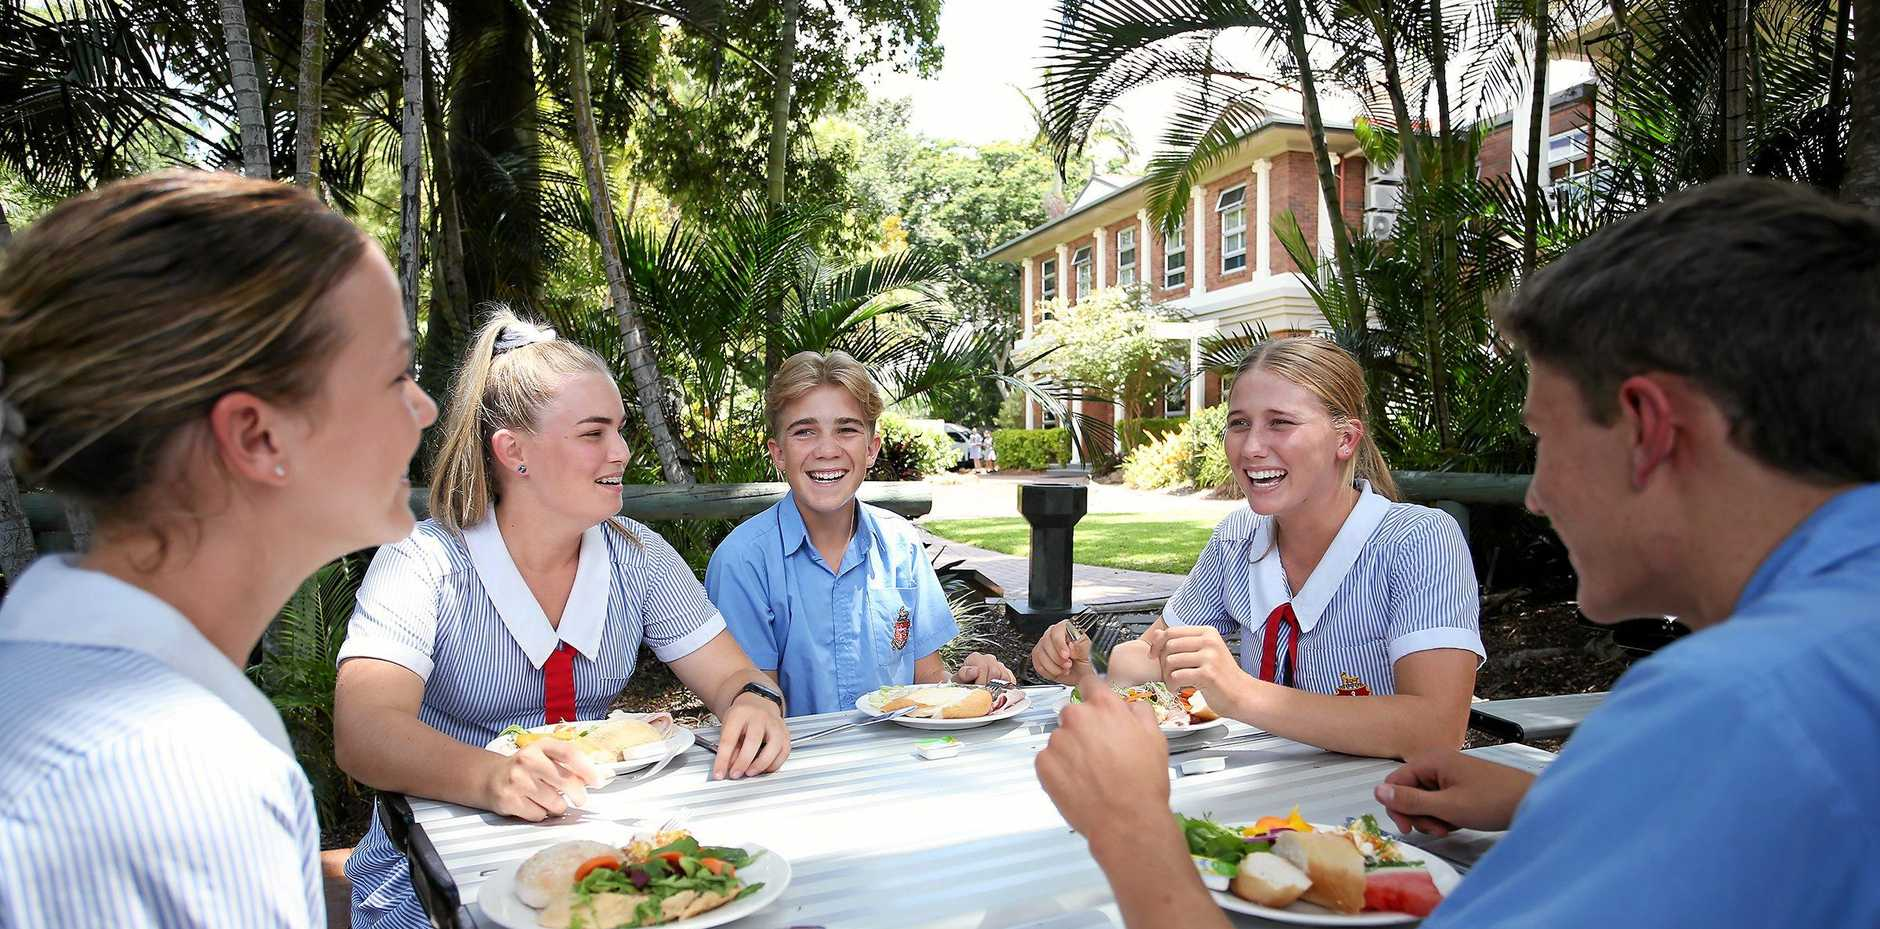 The Rockhampton Grammar School was Rockhampton's top performing primary and high school.